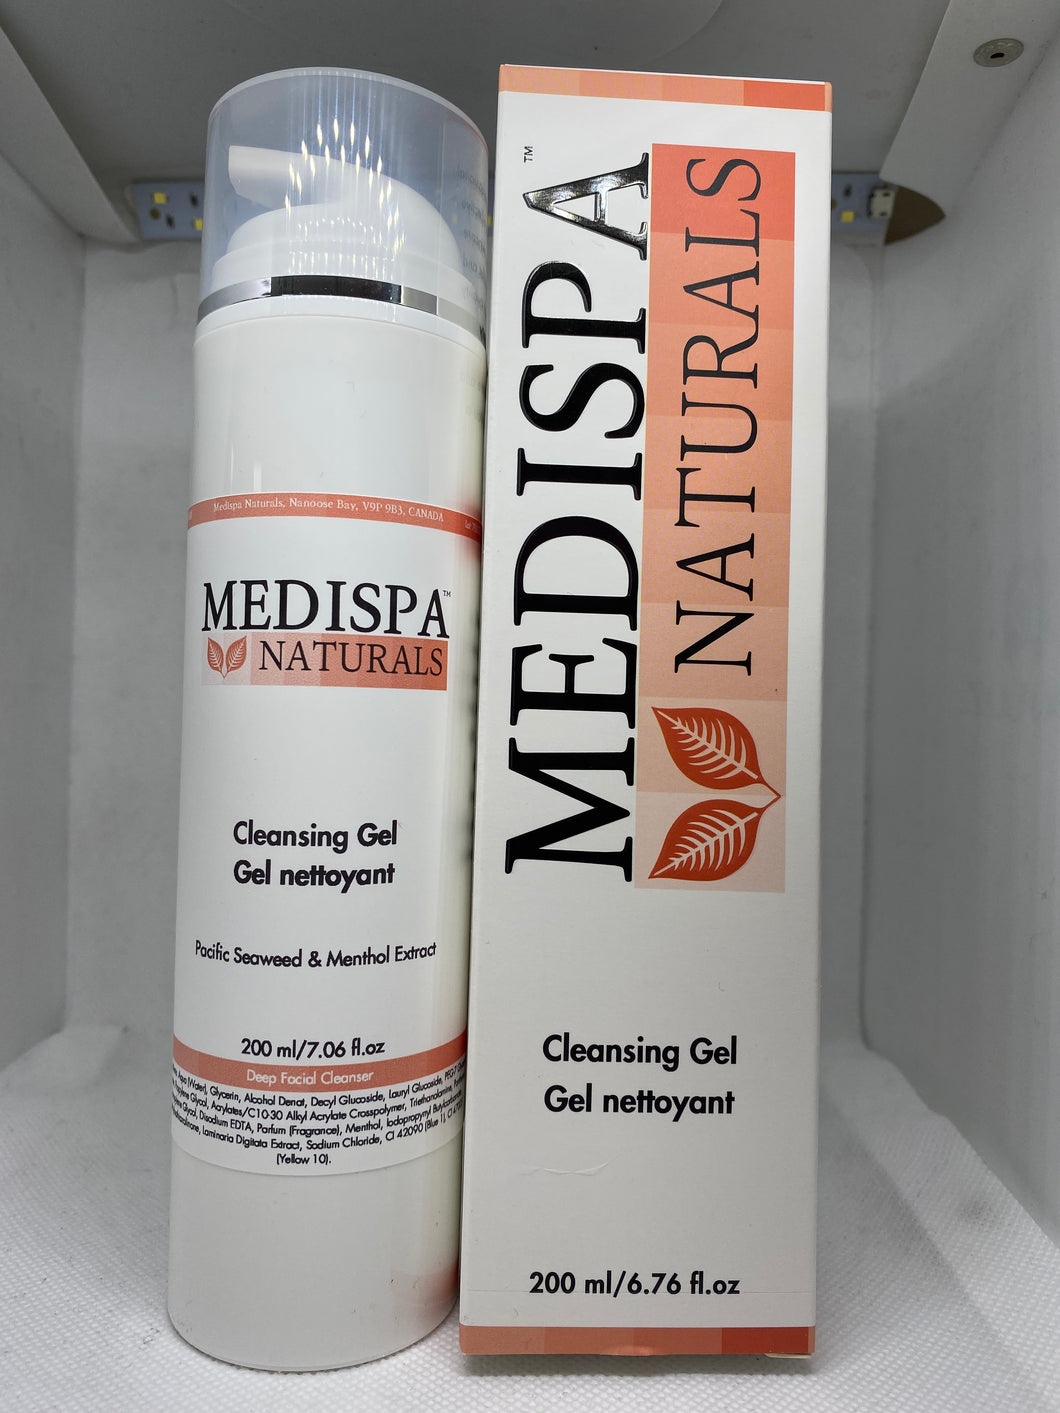 MediSpa Cleansing Gel